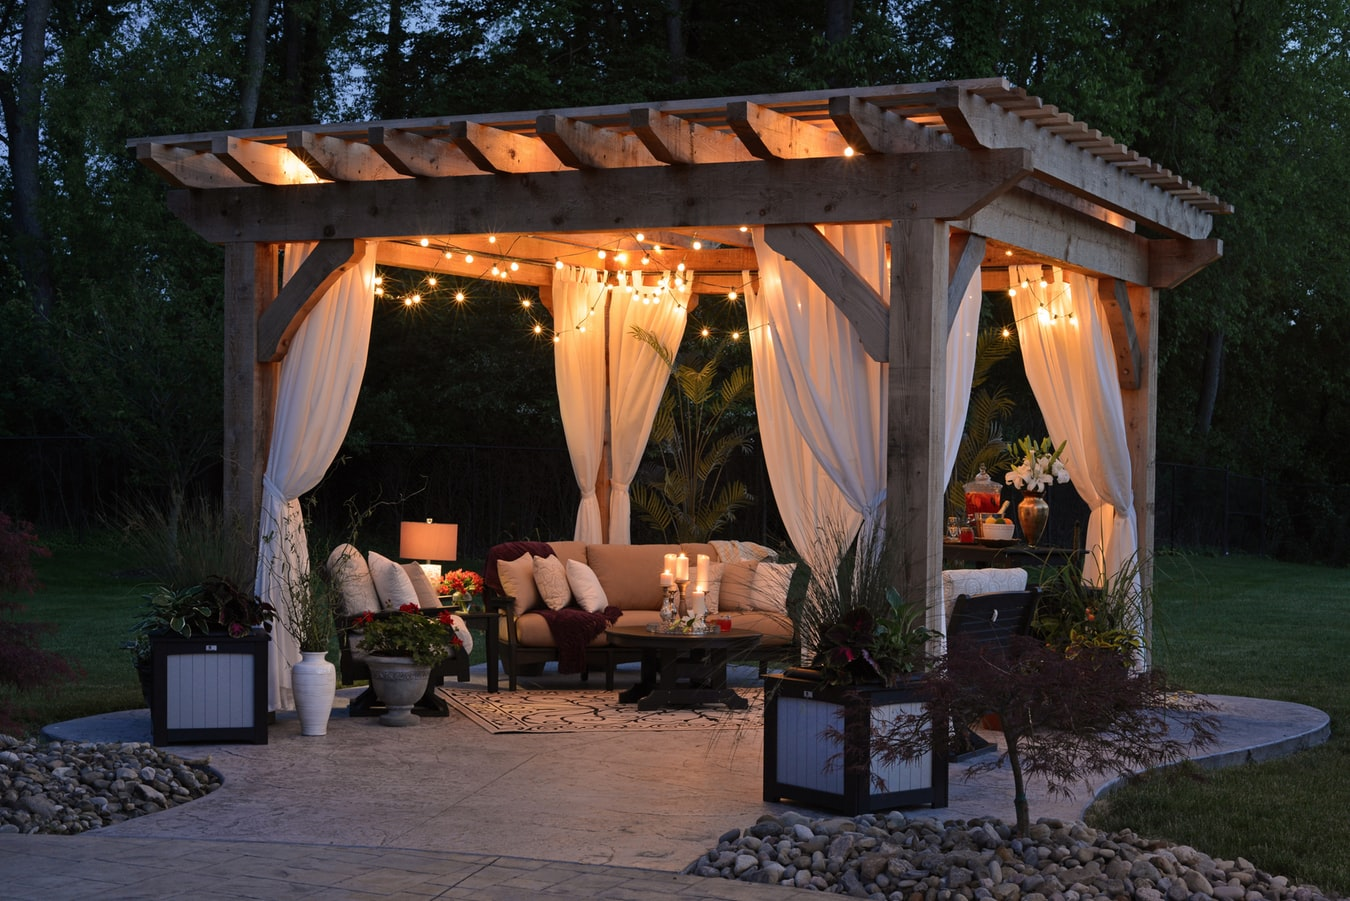 Why a Gazebo is a Great Backyard Design Upgrade